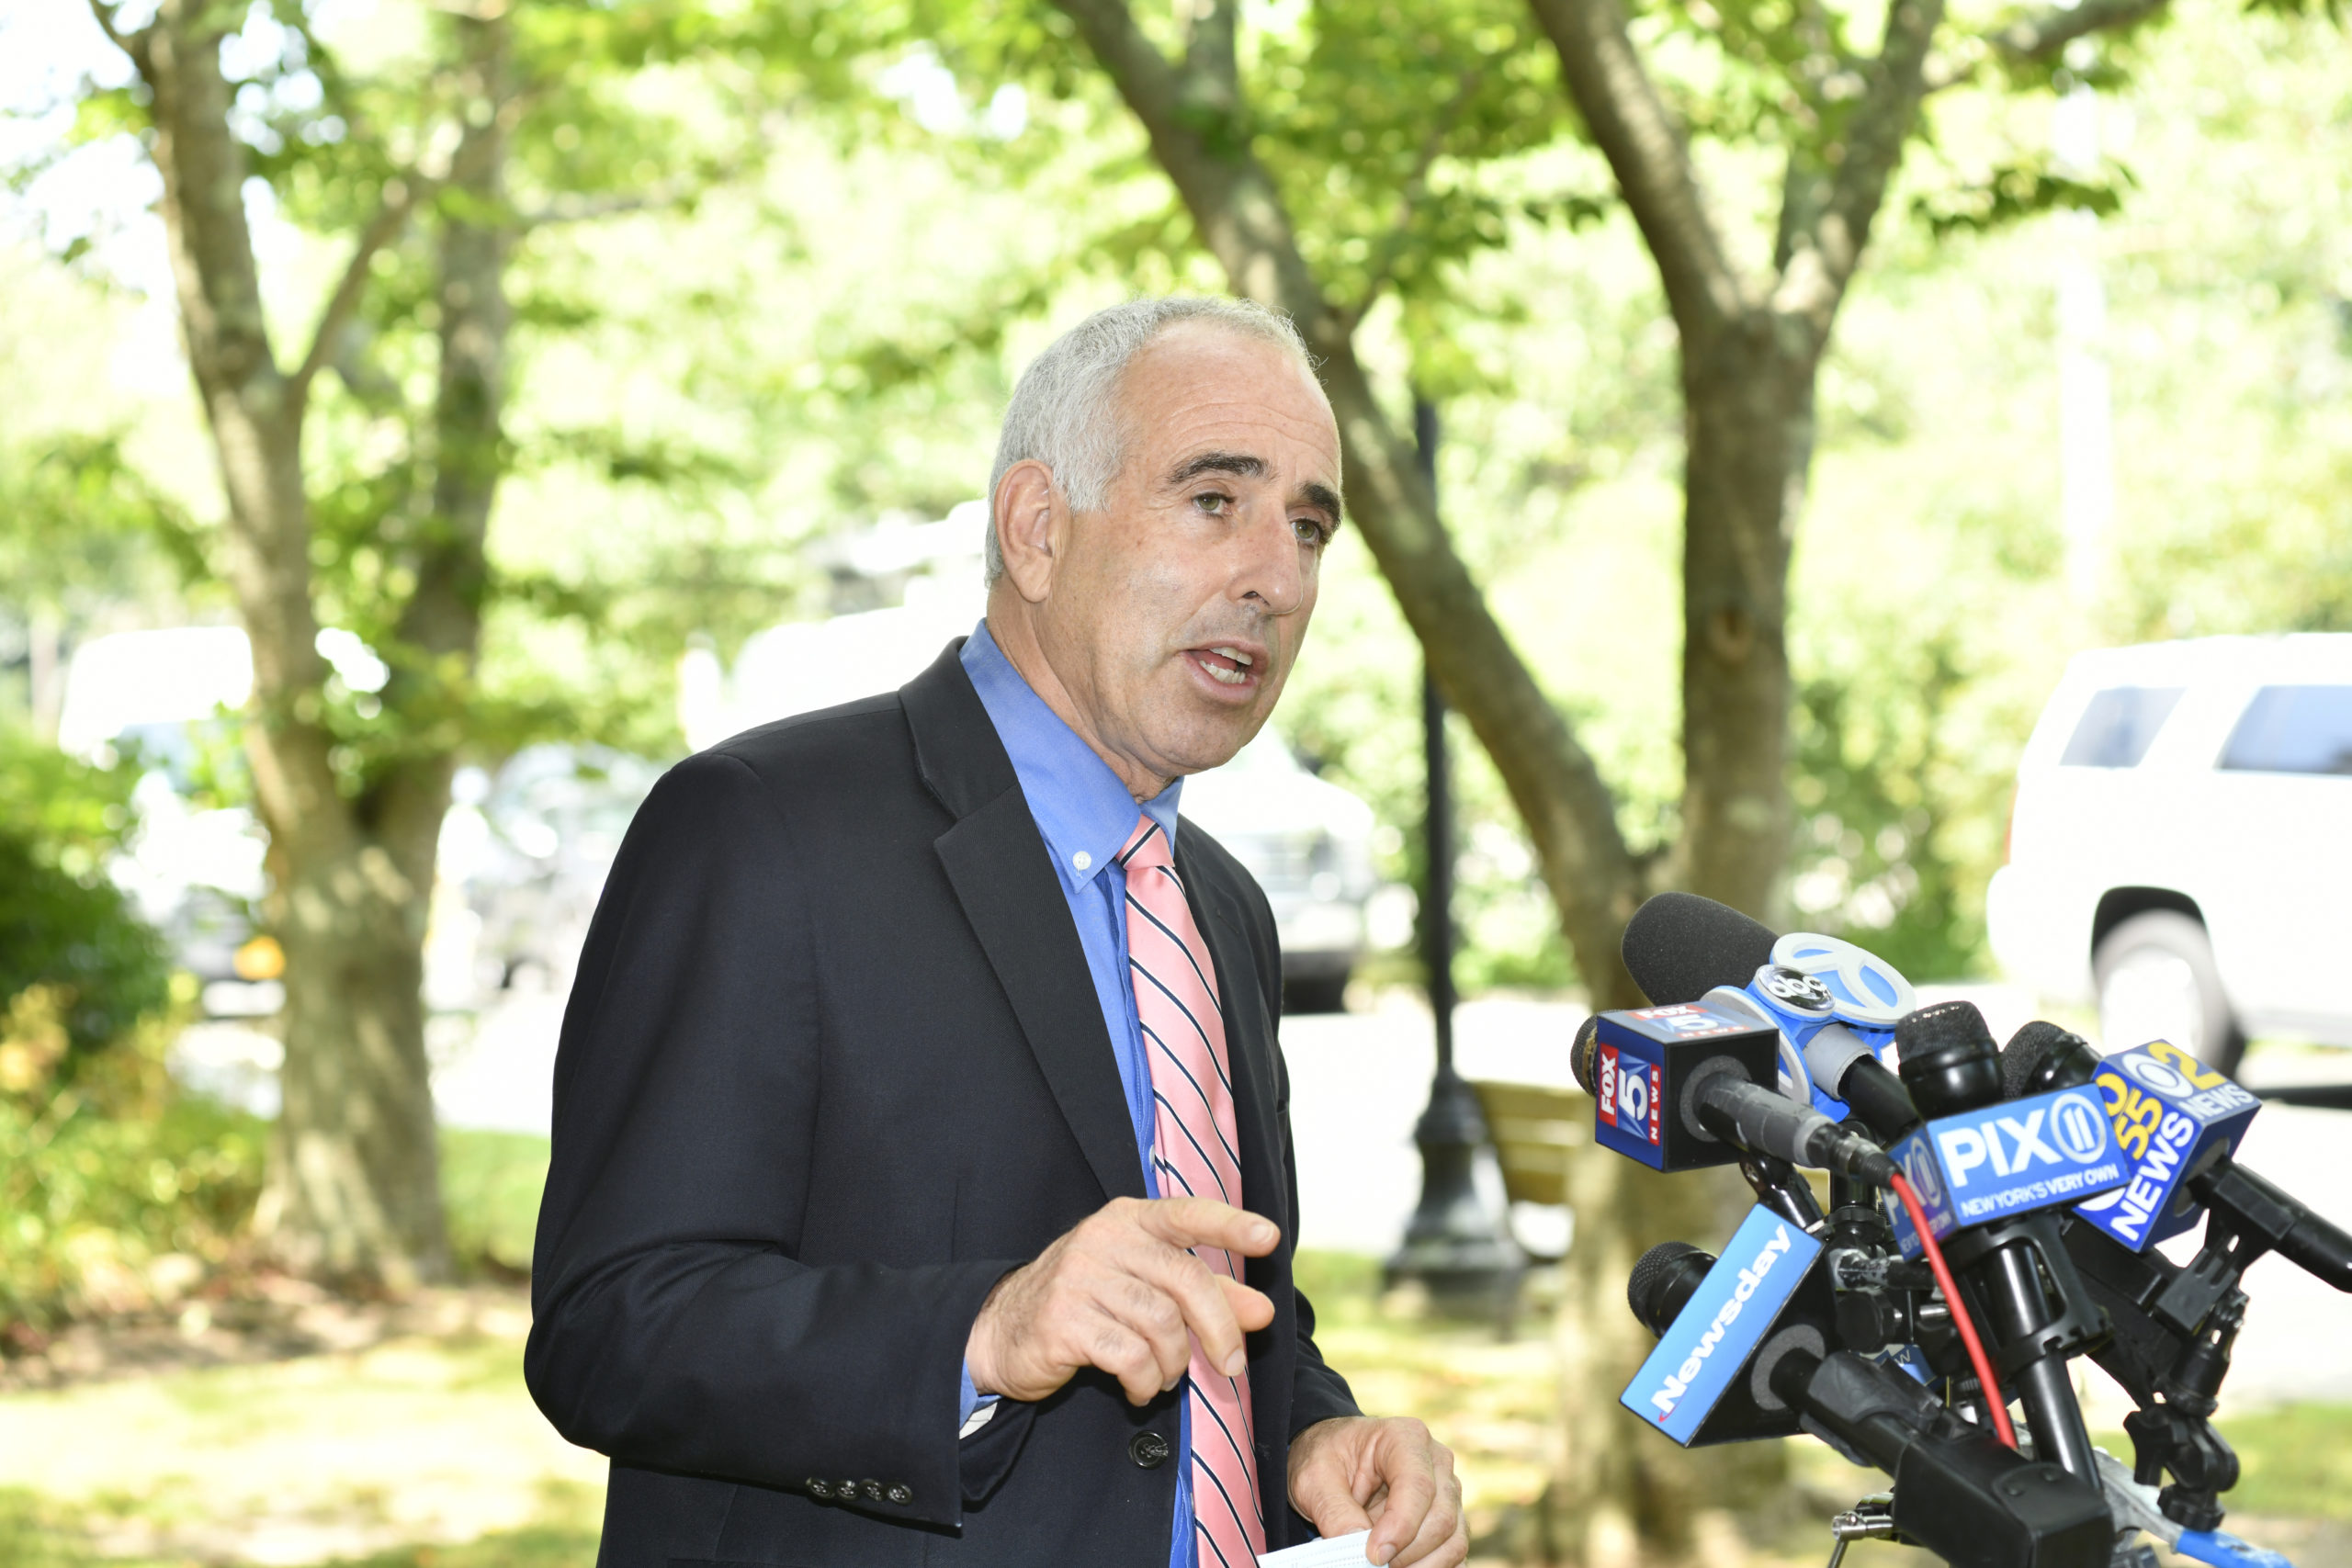 Southampton Town Supervisor Jay Schneiderman at a press conference at town hall on Tuesday, July 28.  DANA SHAW